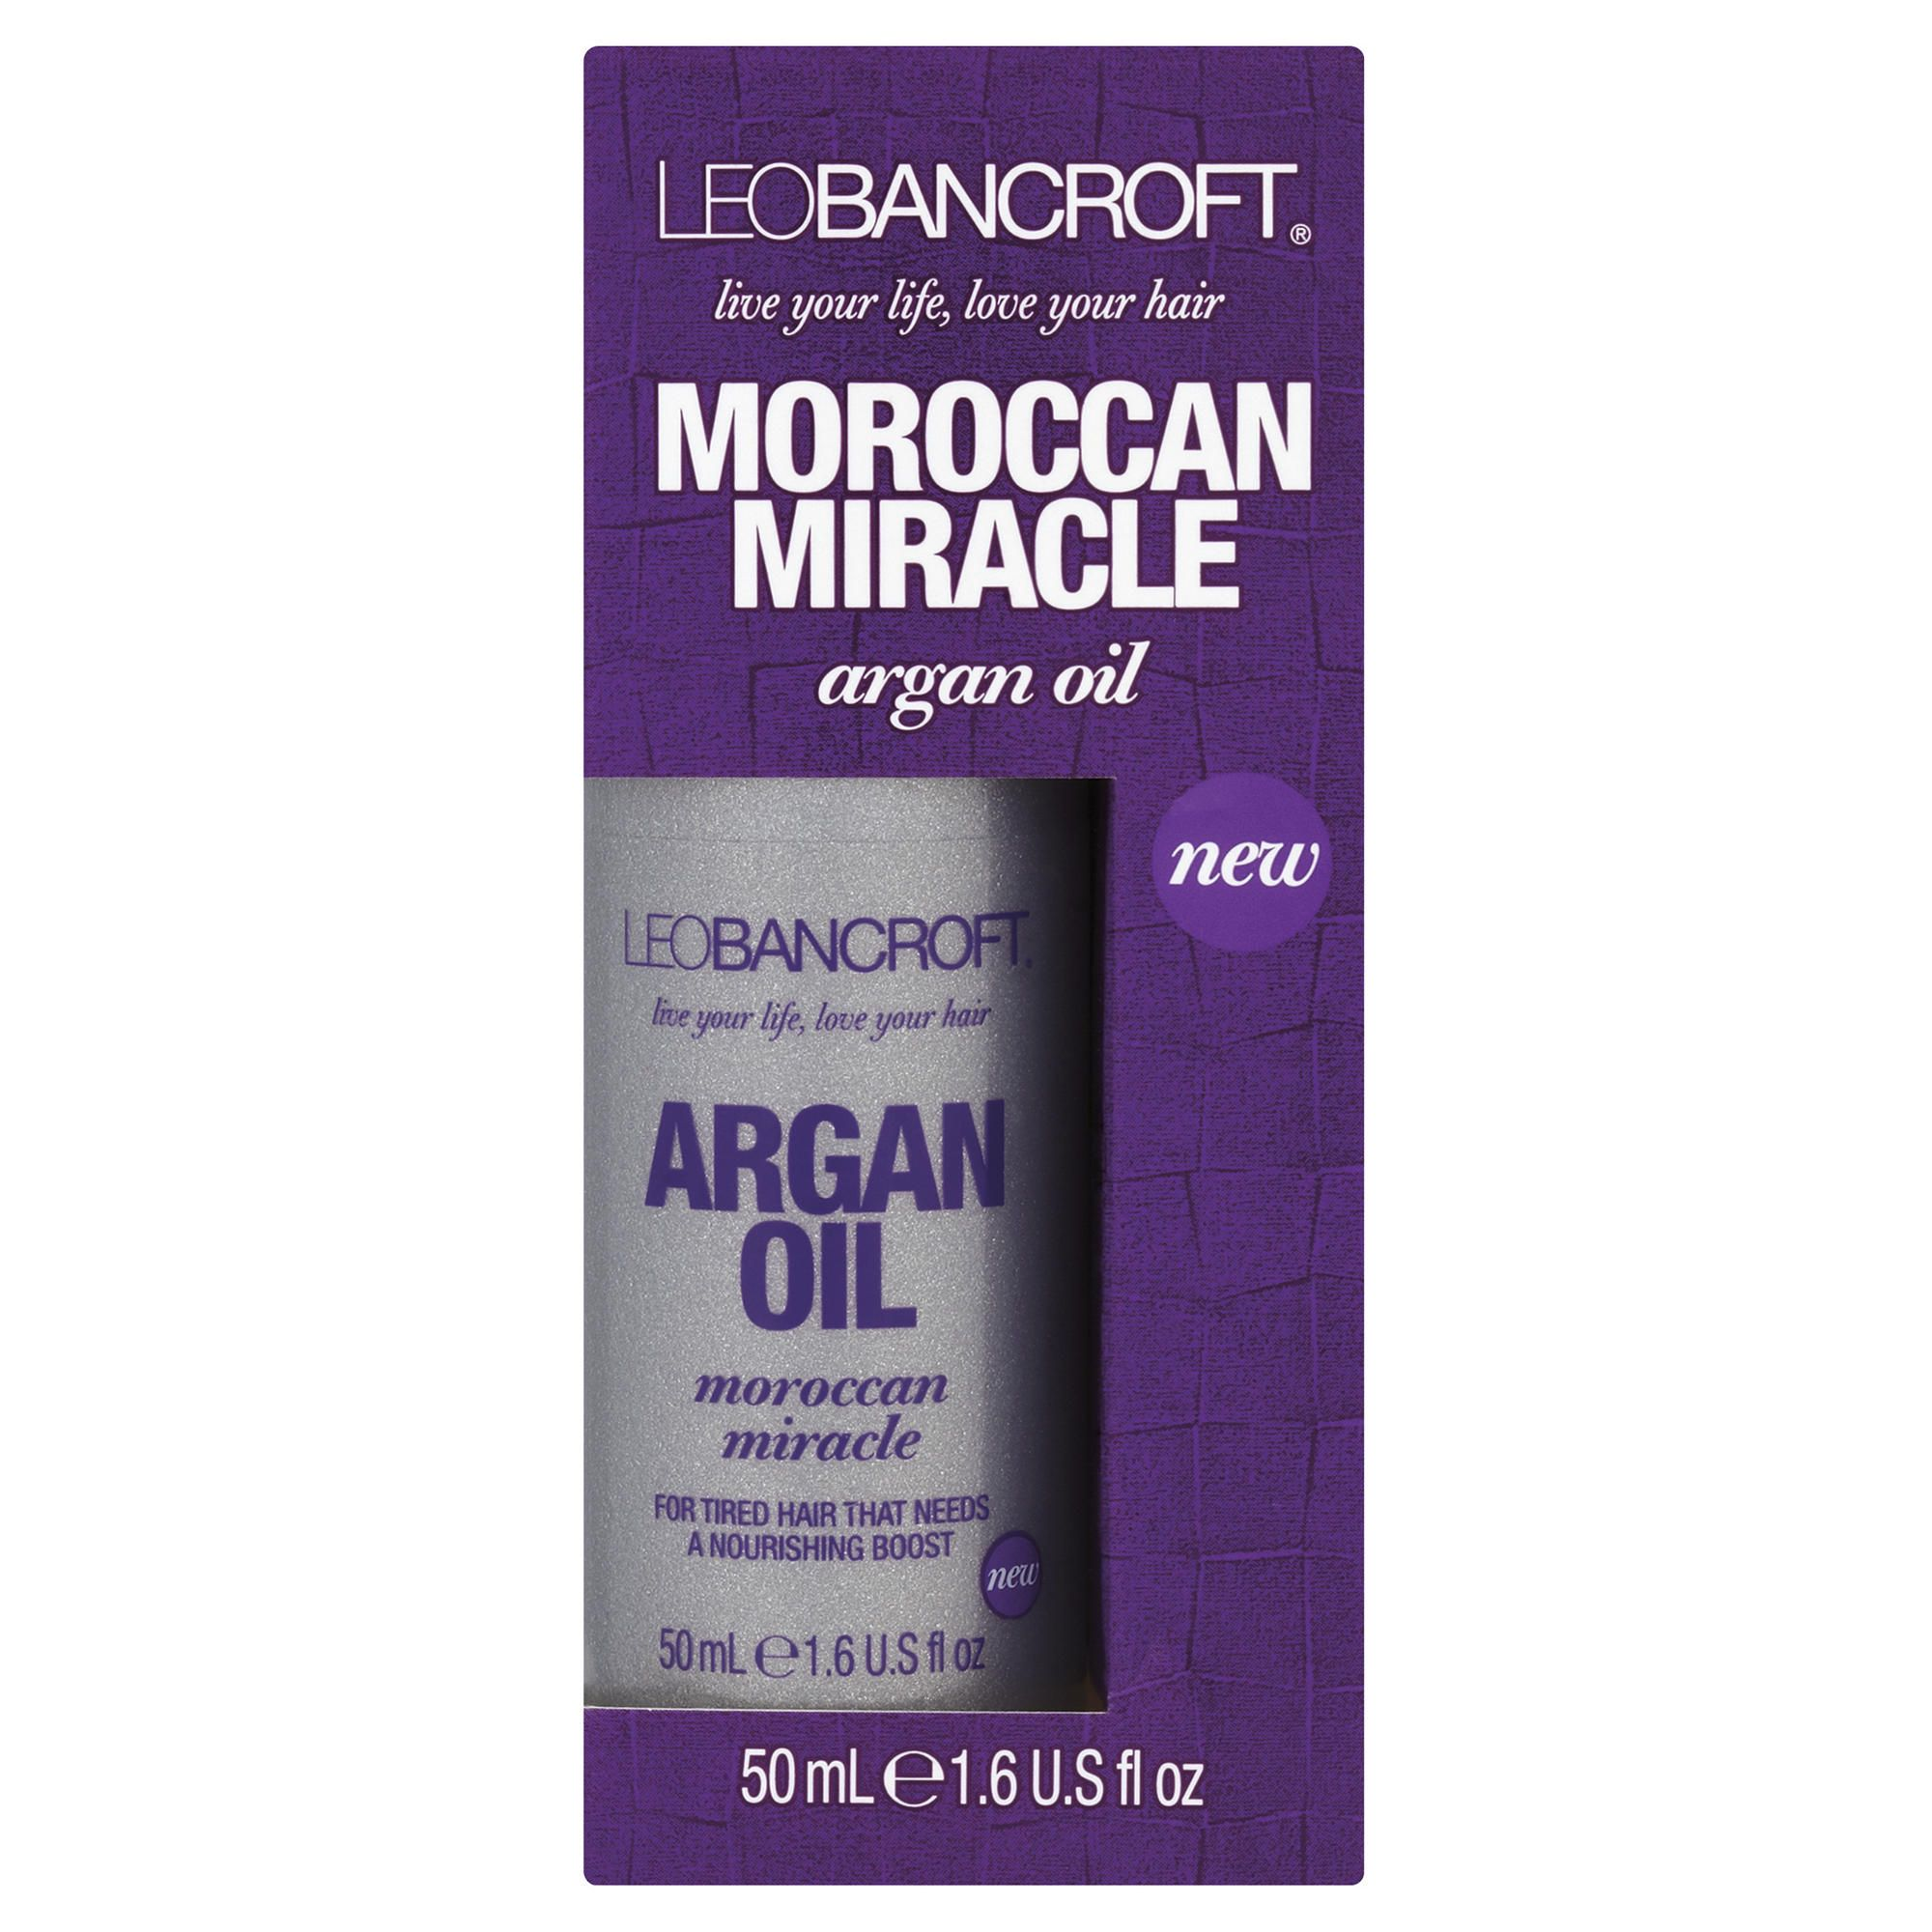 Leo Bancroft Moroccan Miracle Argan Oil